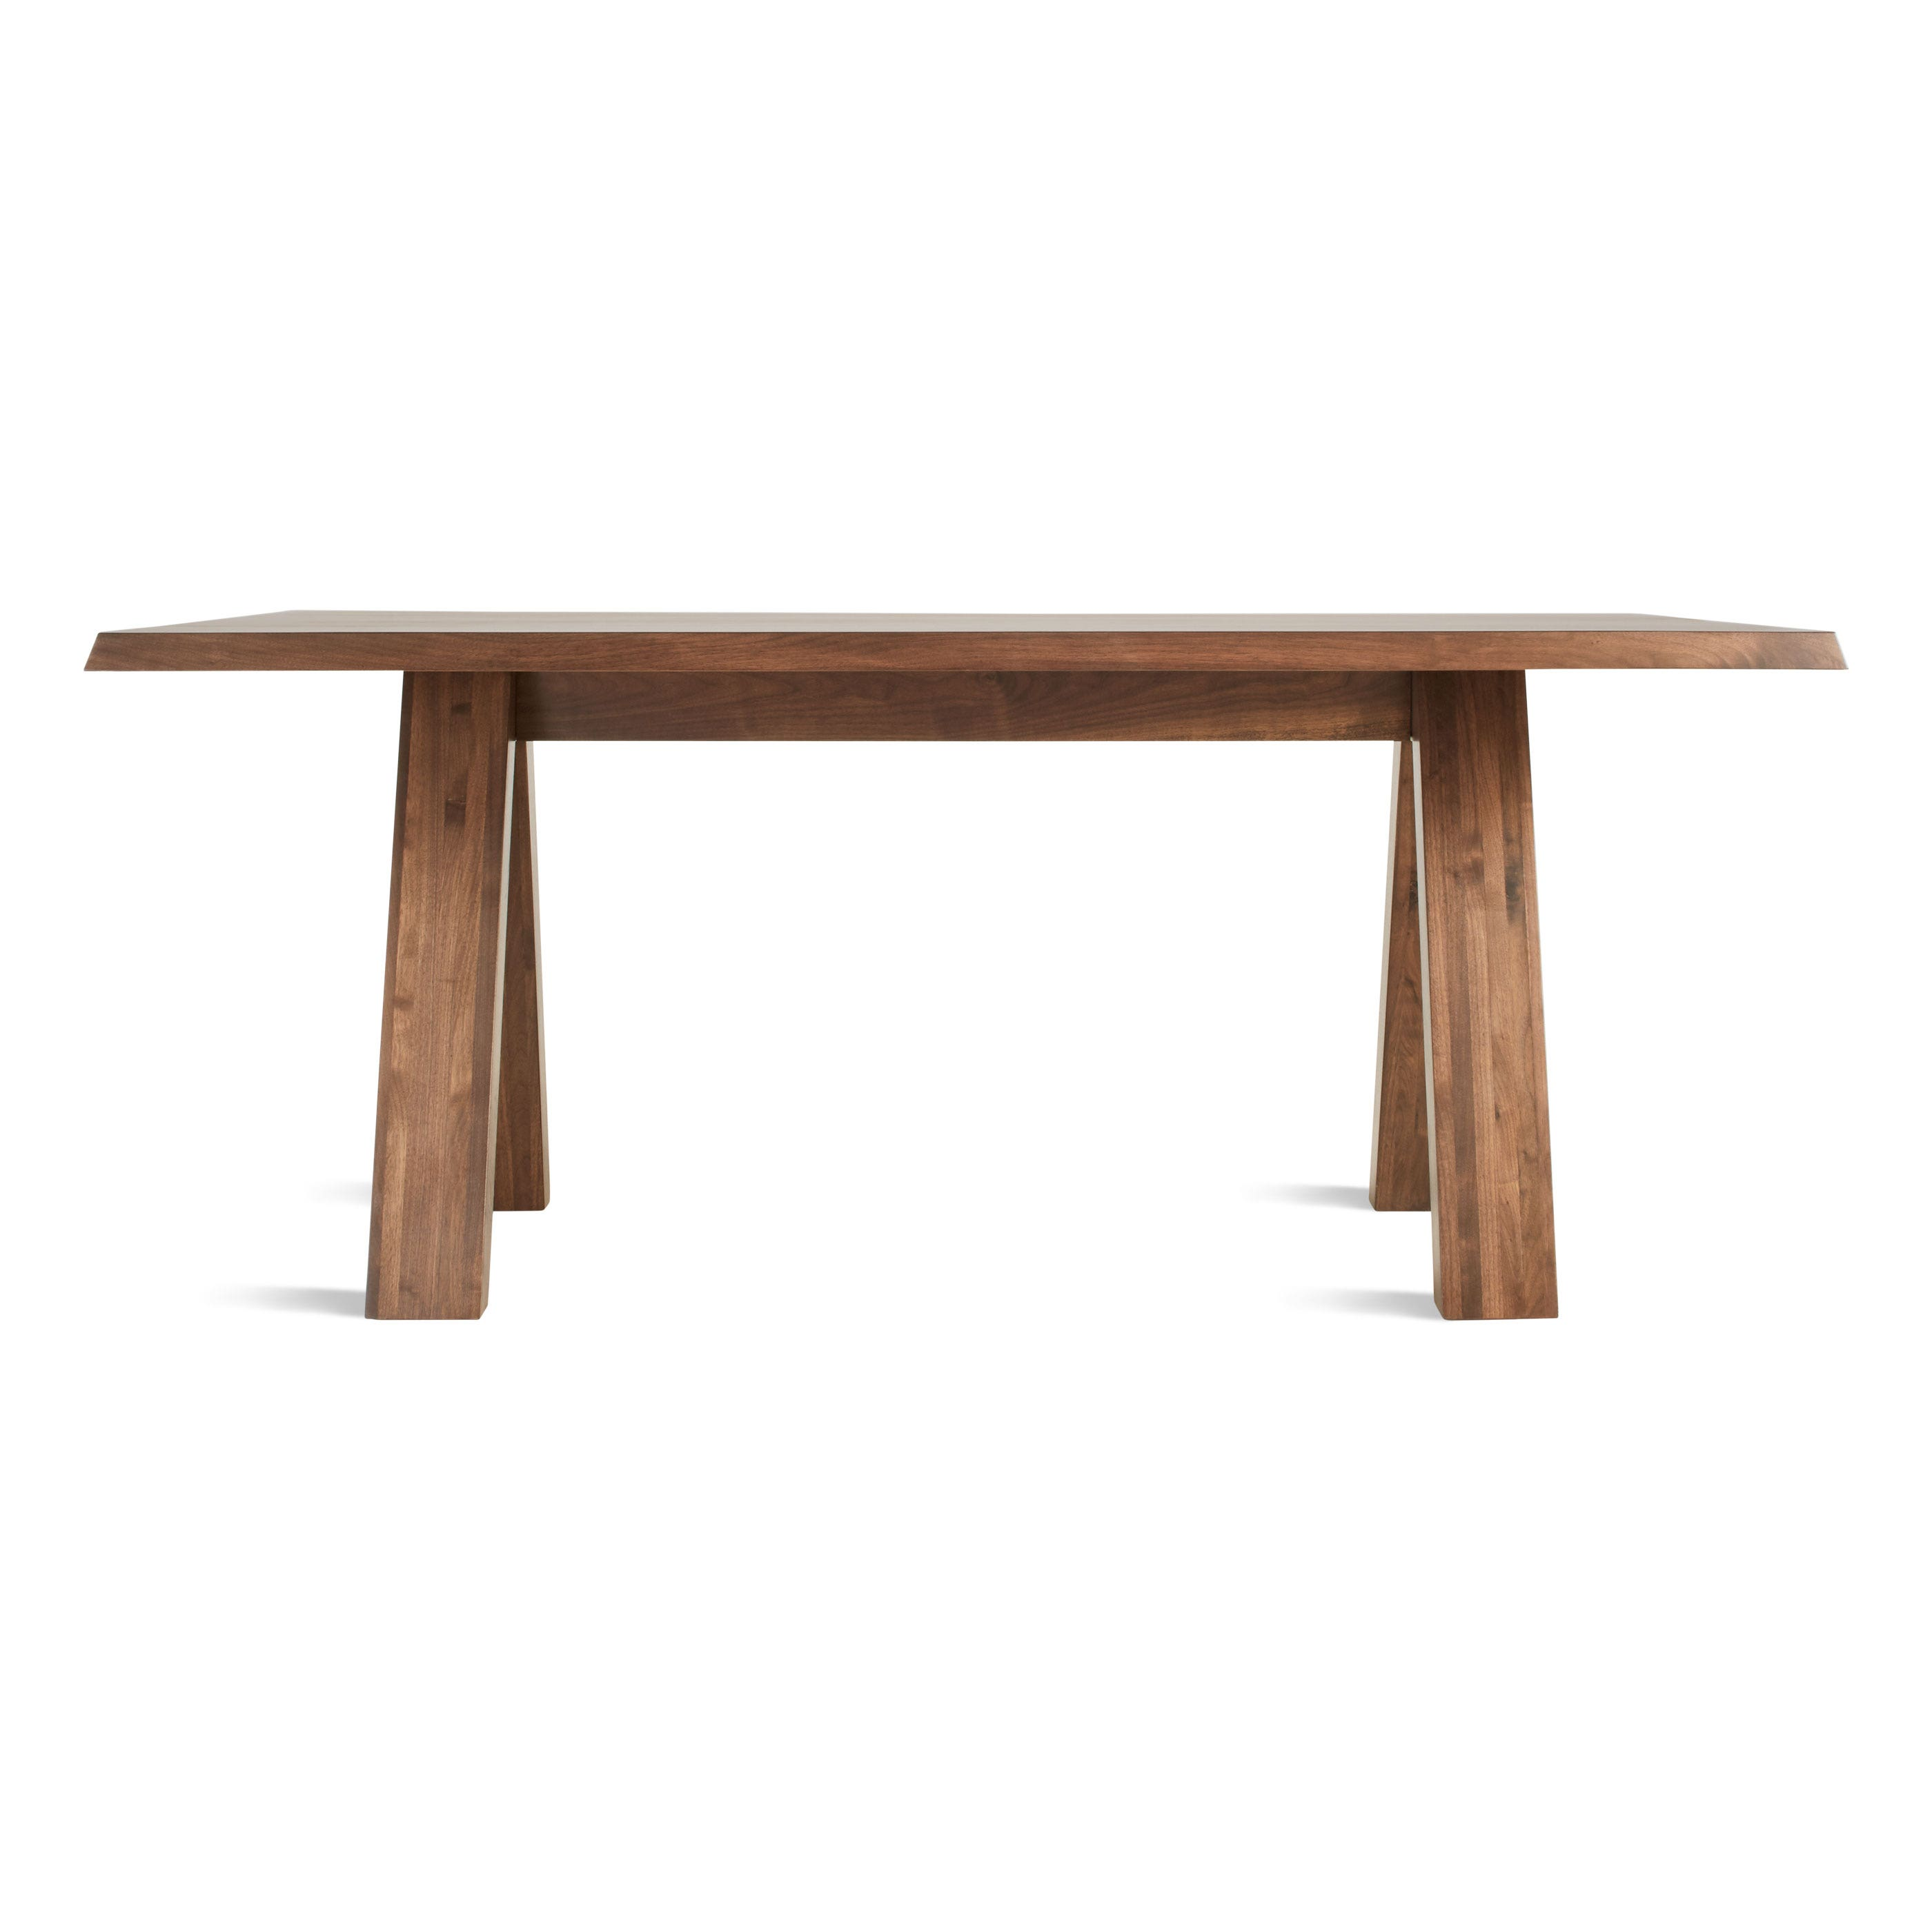 Solid Wood Modern Dining Table Modern Solid Wood Dining Table A Walk In The Park Blu Dot